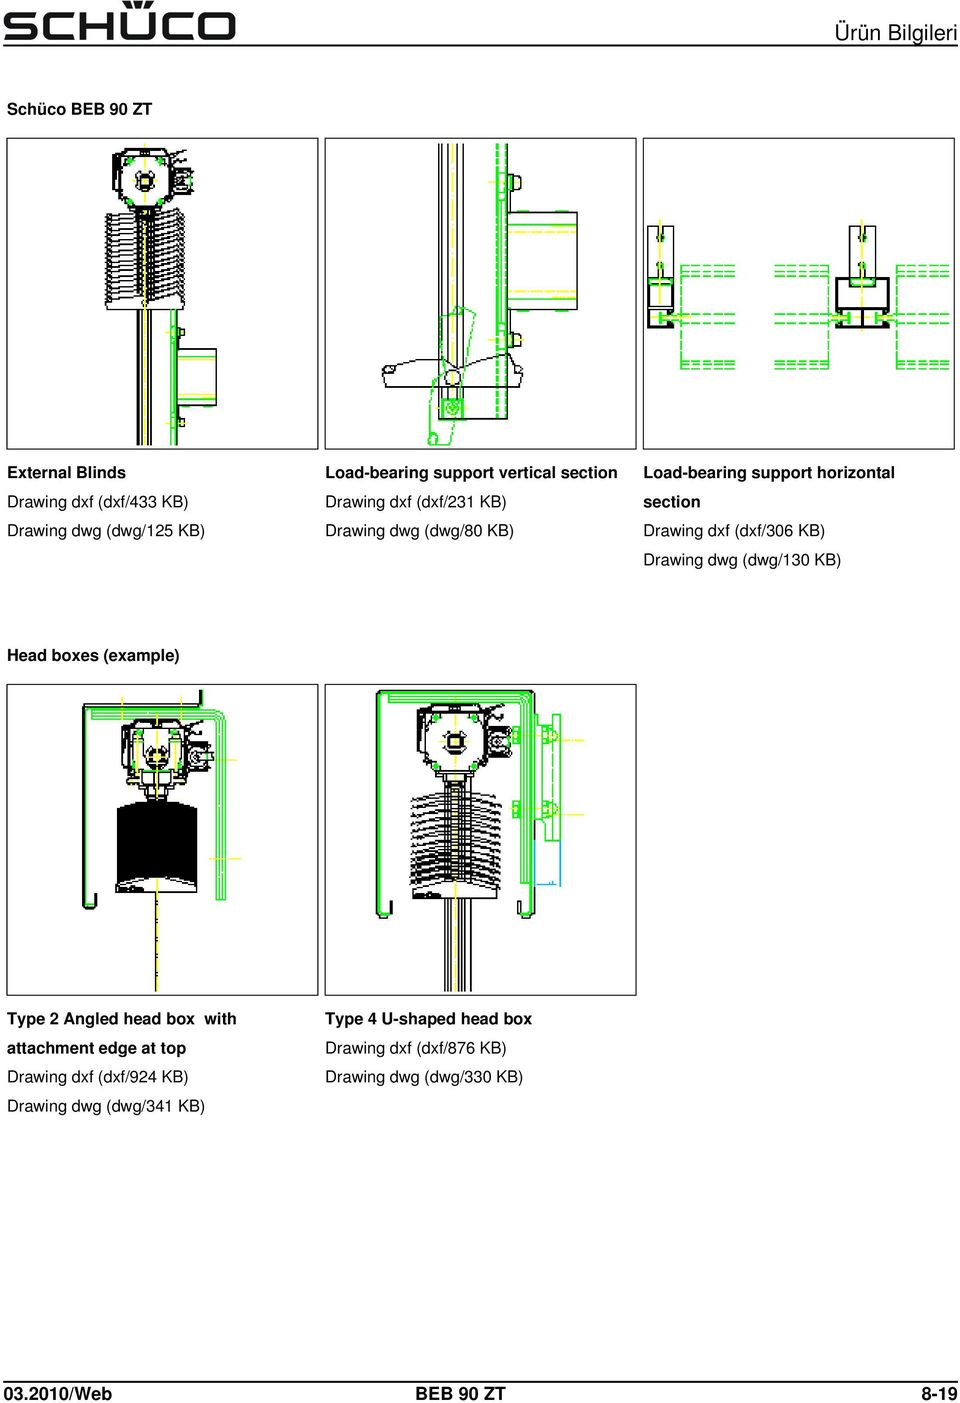 dwg (dwg/130 KB) Head boxes (example) Type 2 Angled head box with attachment edge at top Drawing dxf (dxf/924 KB)